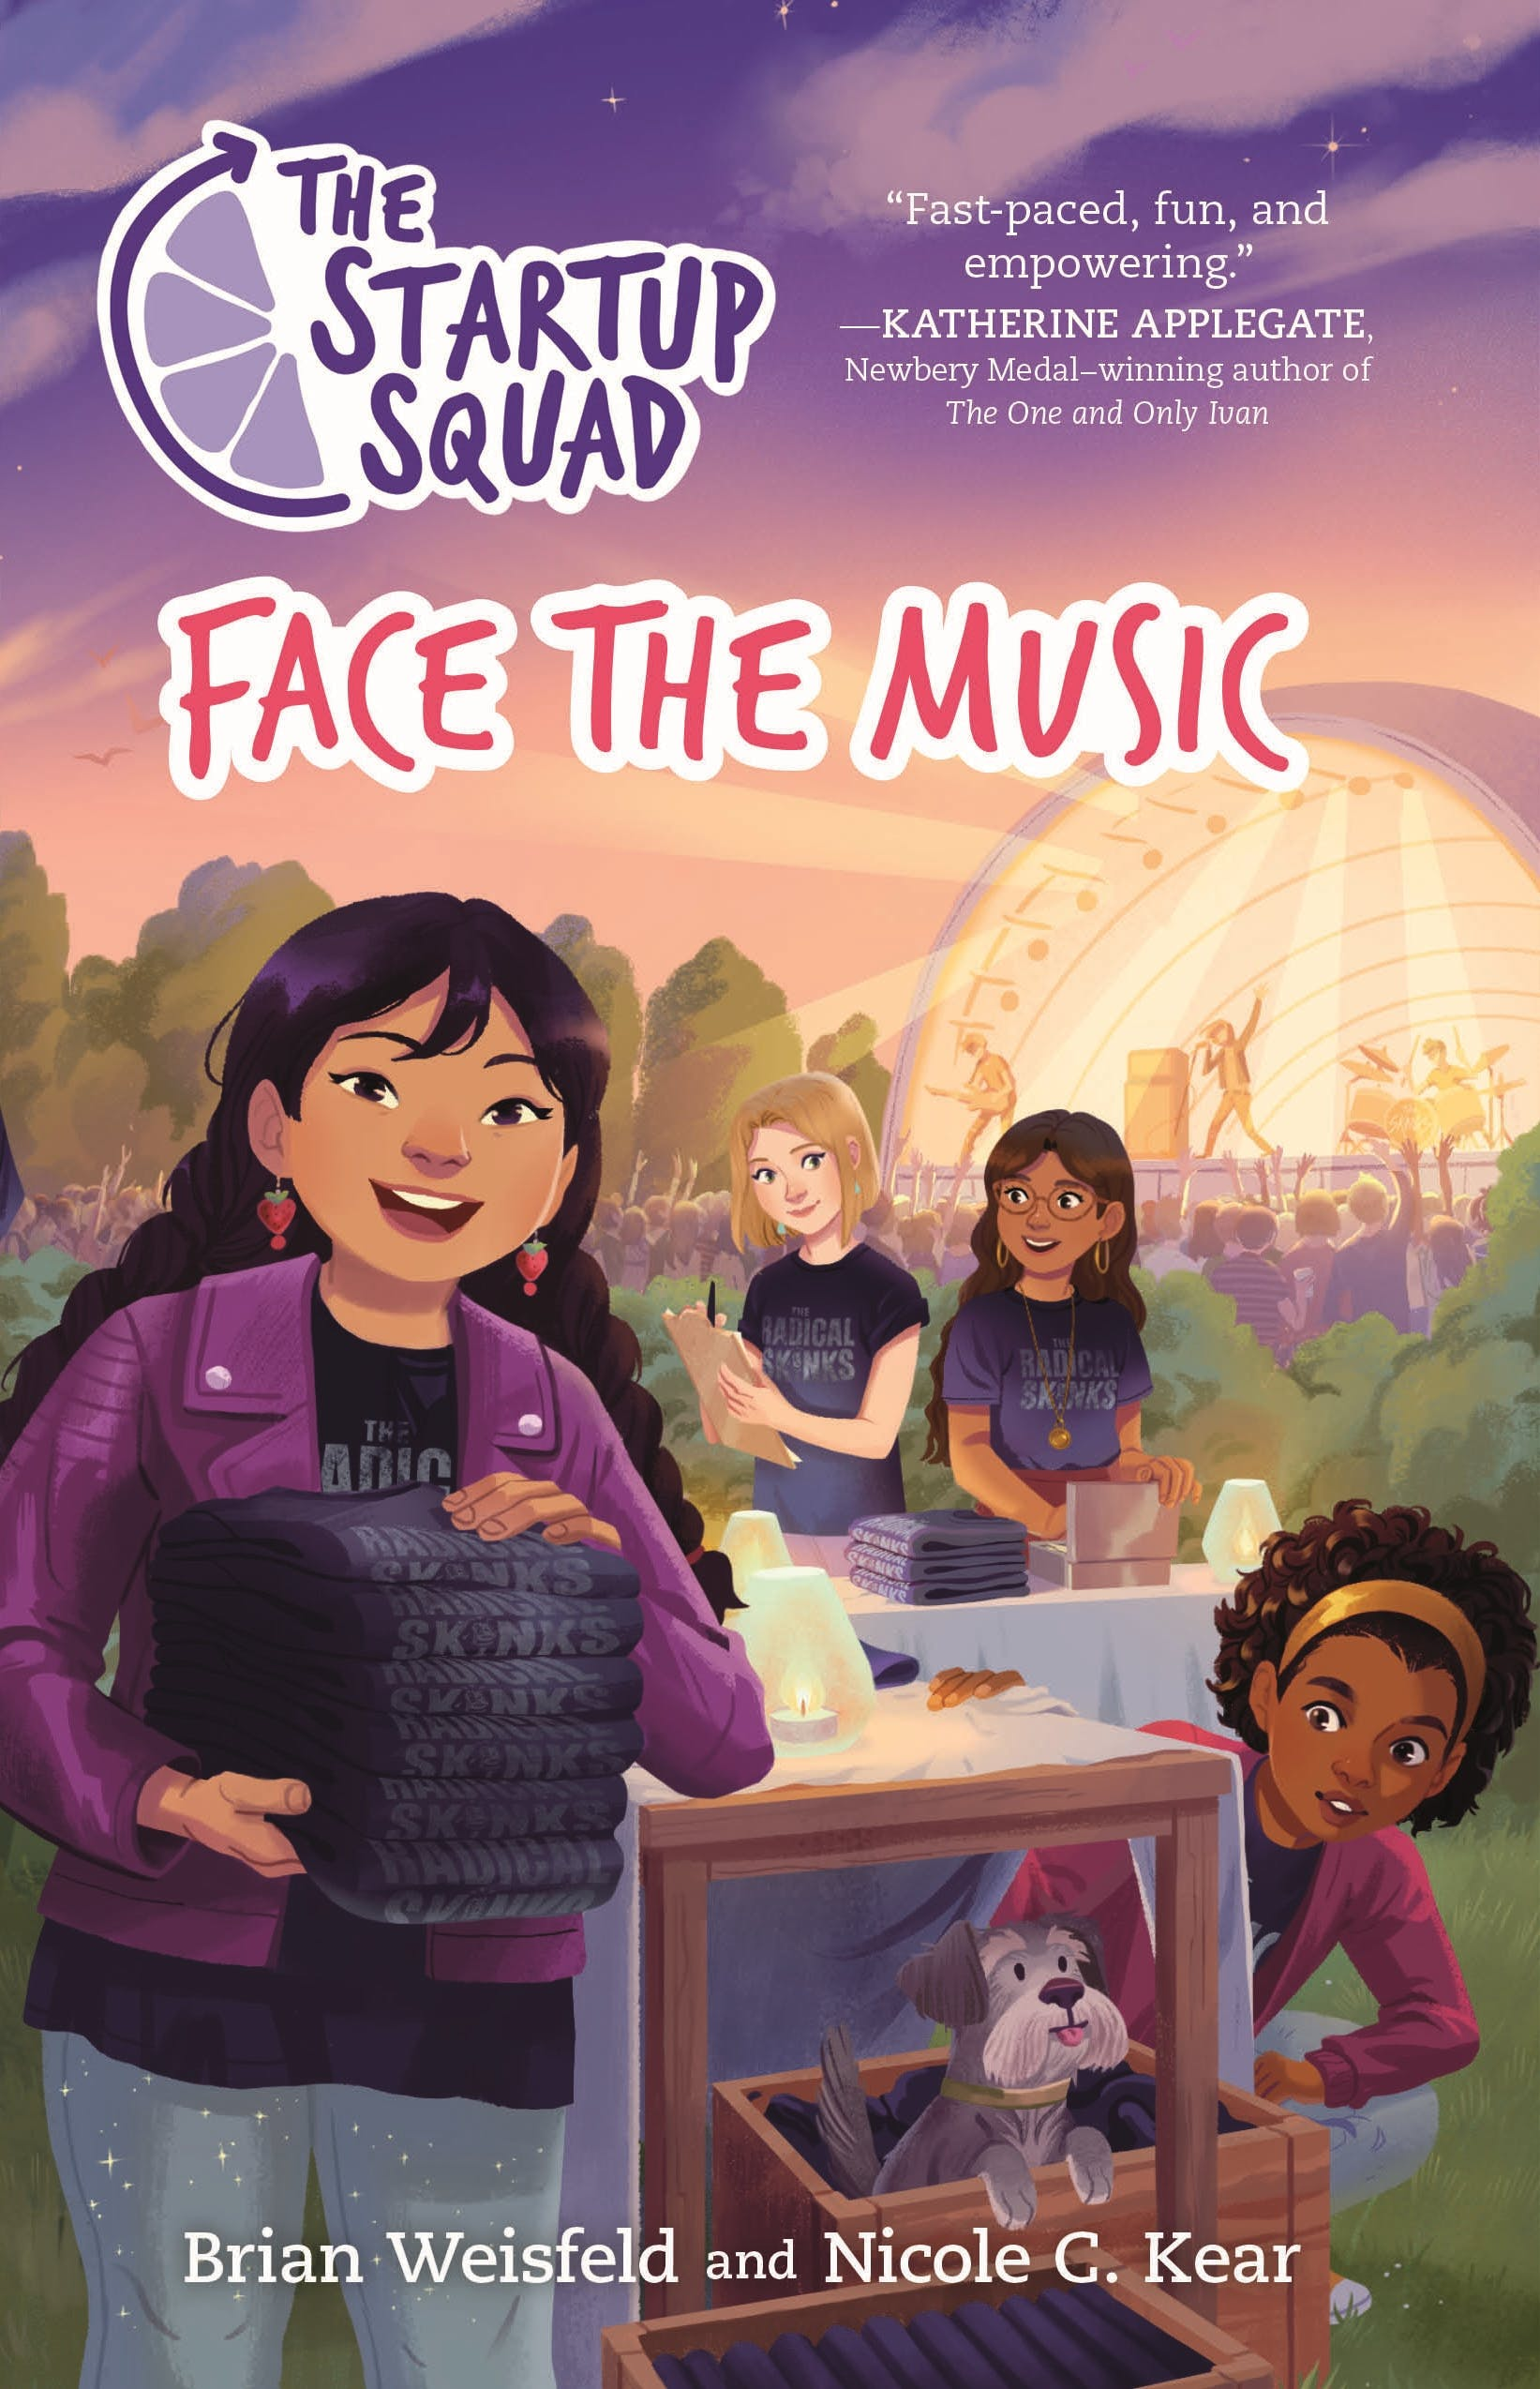 Image of The Startup Squad: Face the Music